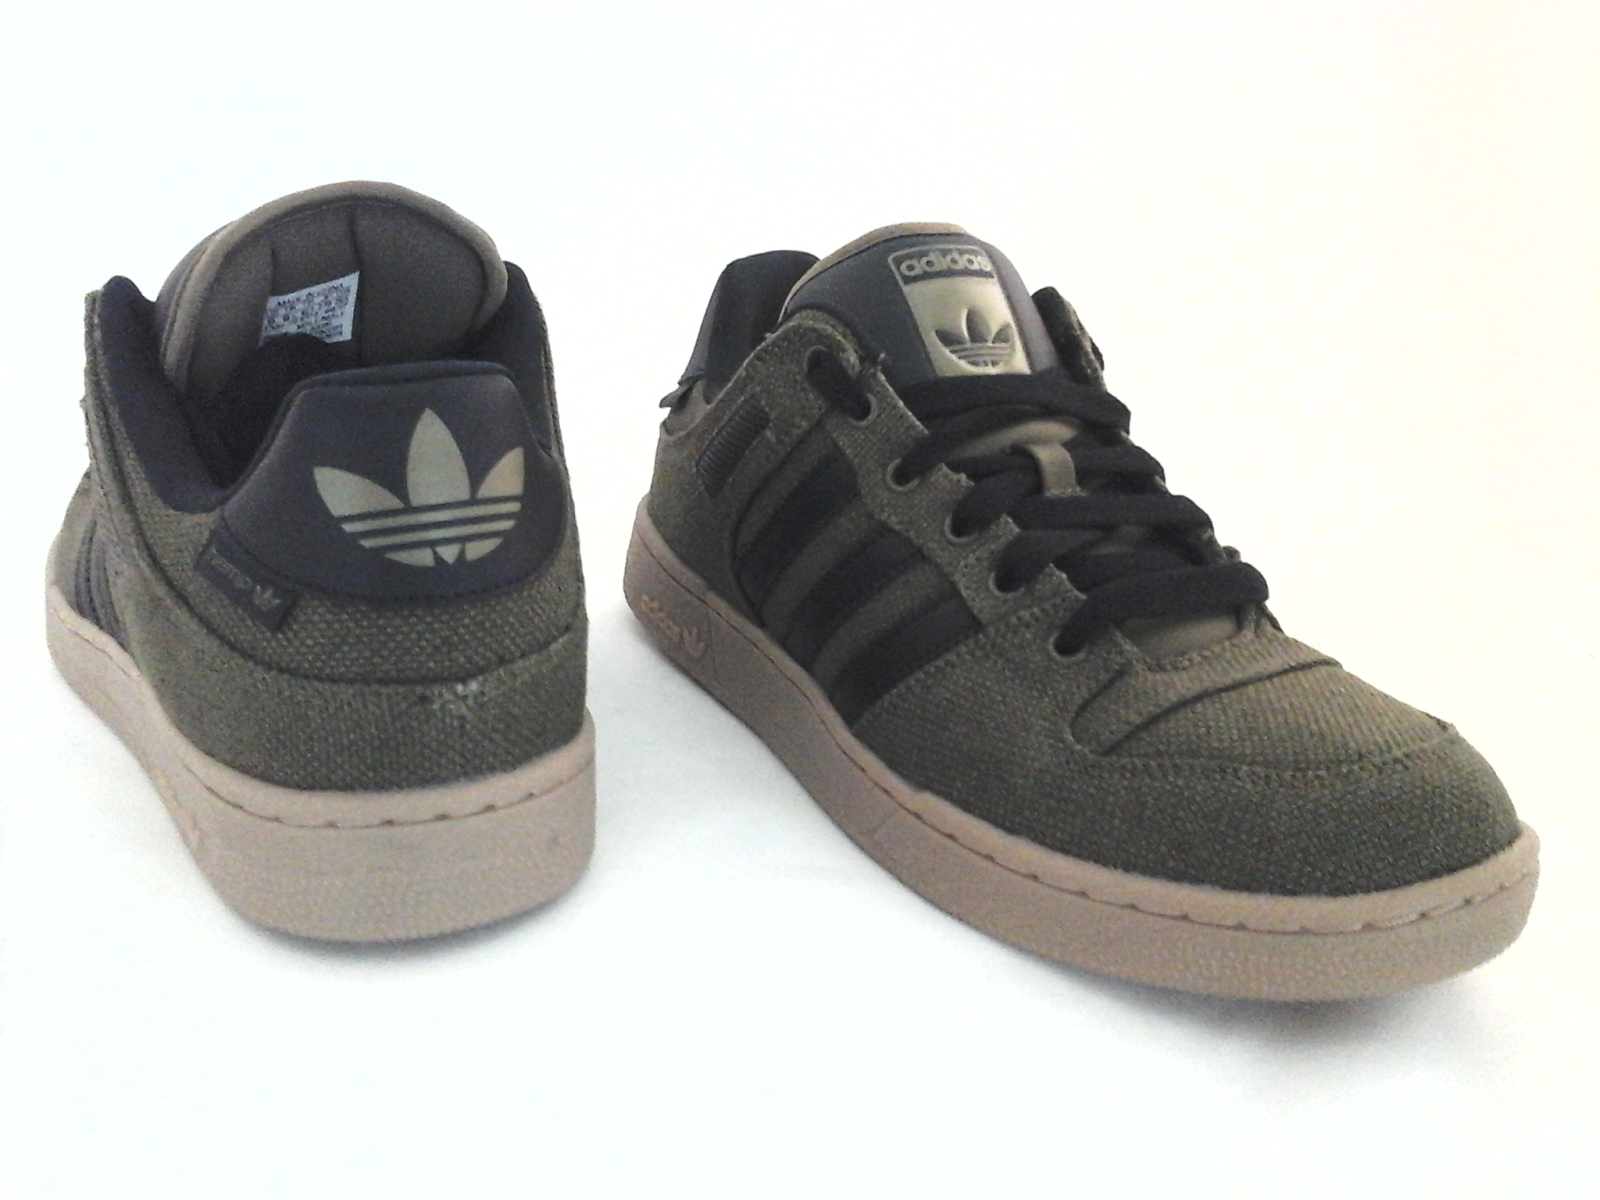 online store 2aba4 d251f Adidas Bucktown ST HEMP Olive GreenBlack w Gum Soles Sneakers Shoes AC6980